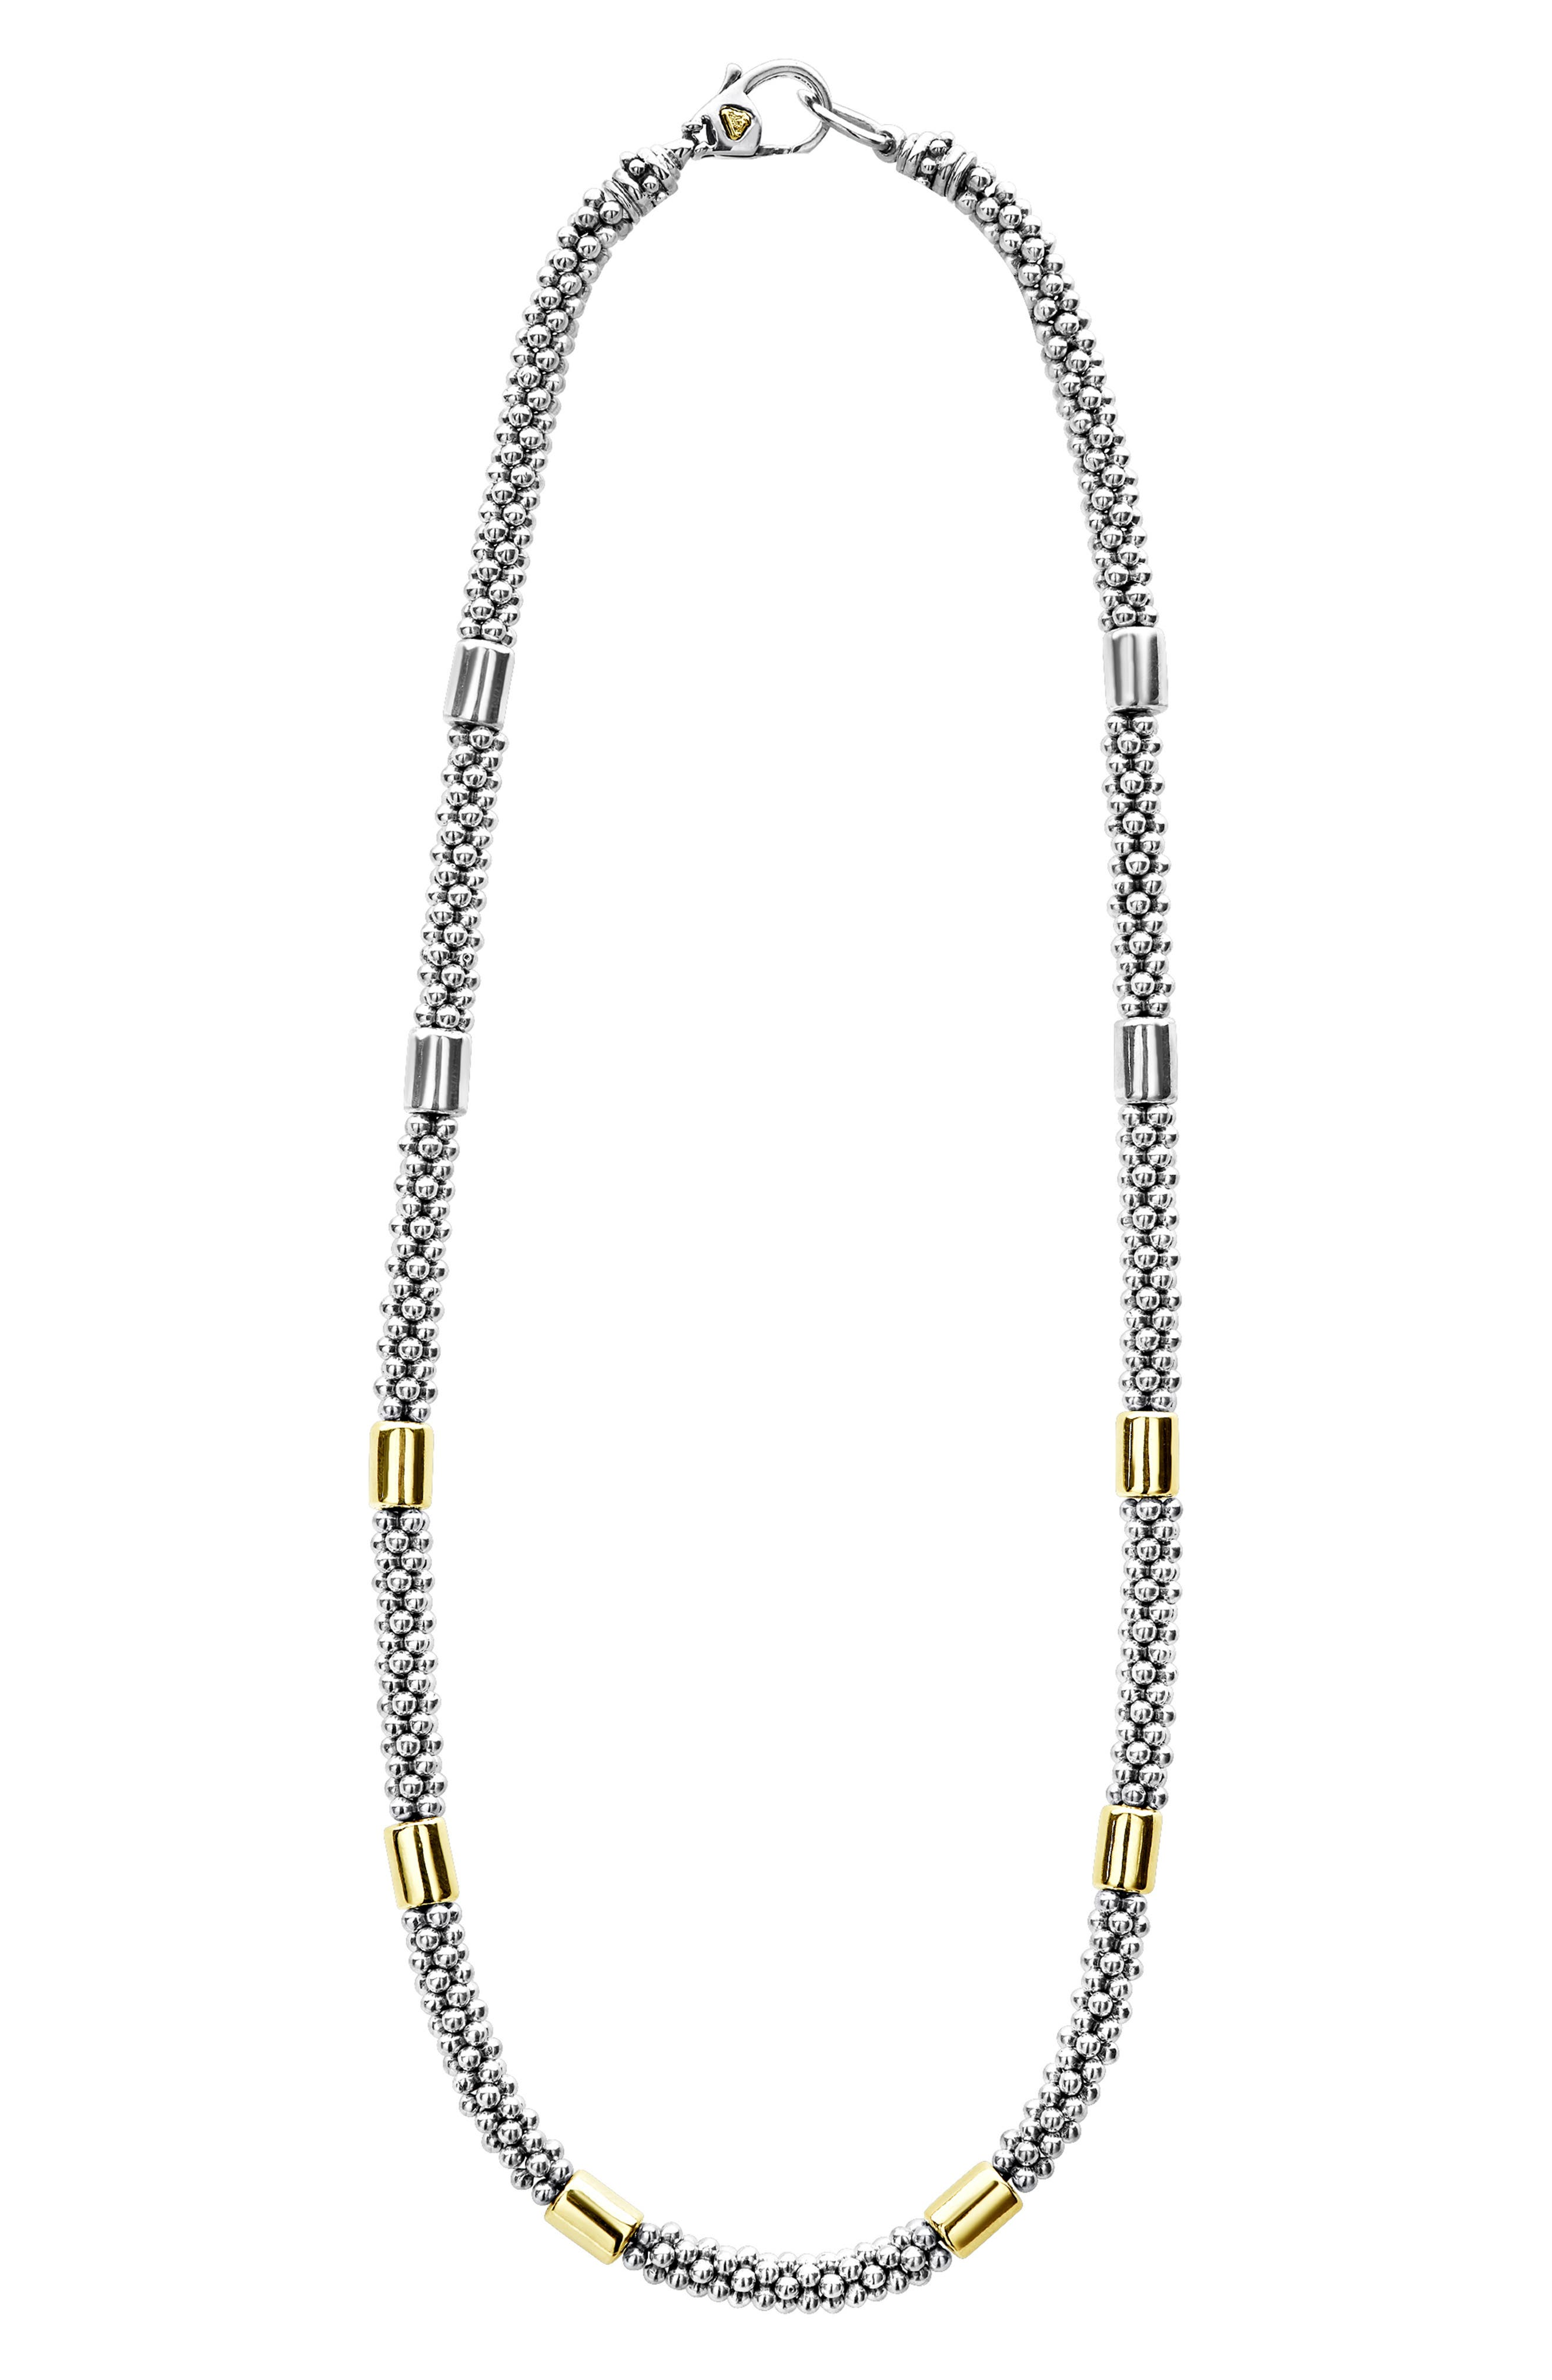 Caviar Rope Collar Necklace,                             Main thumbnail 1, color,                             SILVER/ GOLD